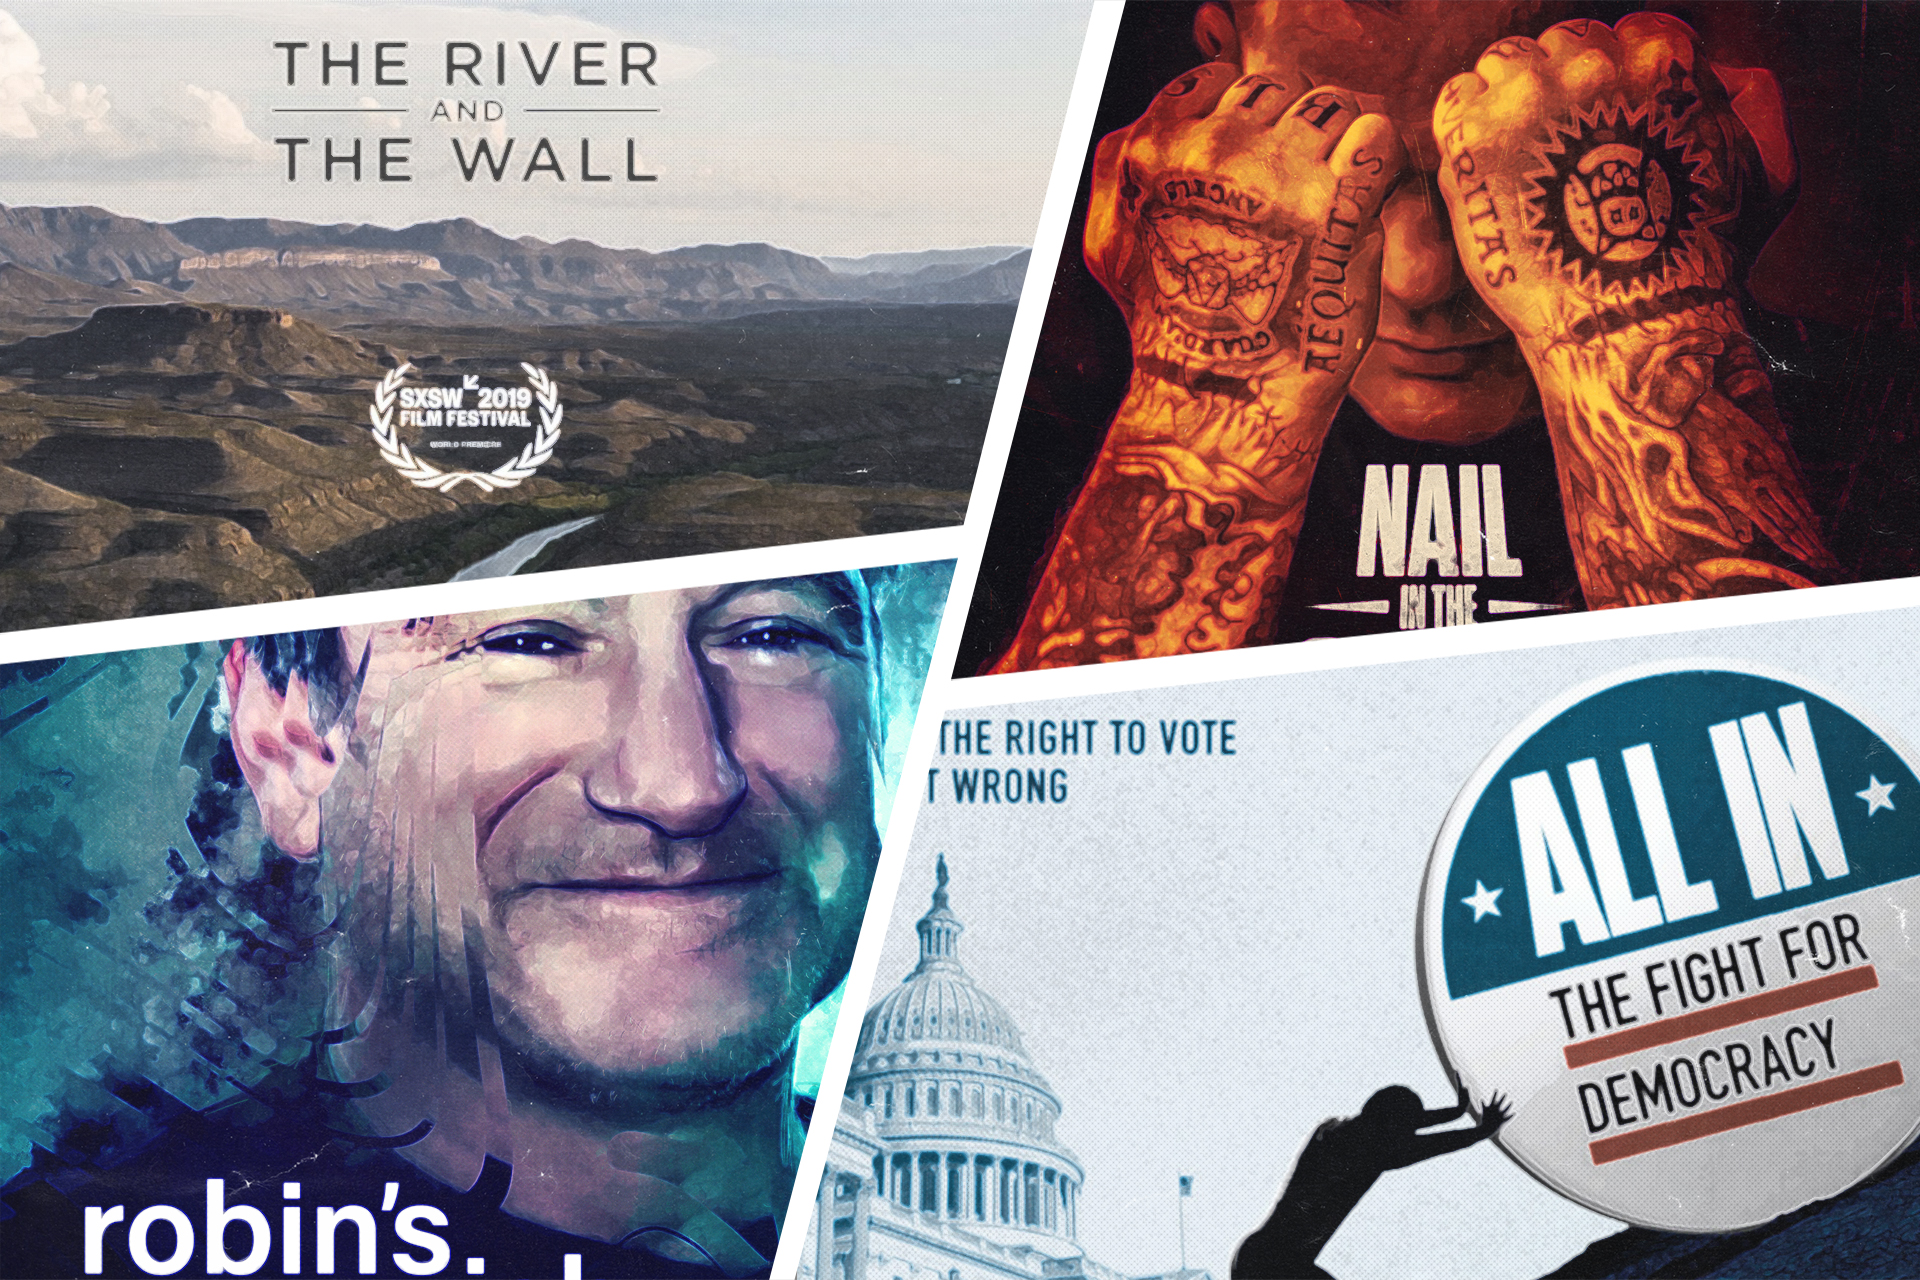 From Robin Williams to Stacy Abrams: A Fall Documentary Roundup | Features | LIVING LIFE FEARLESS